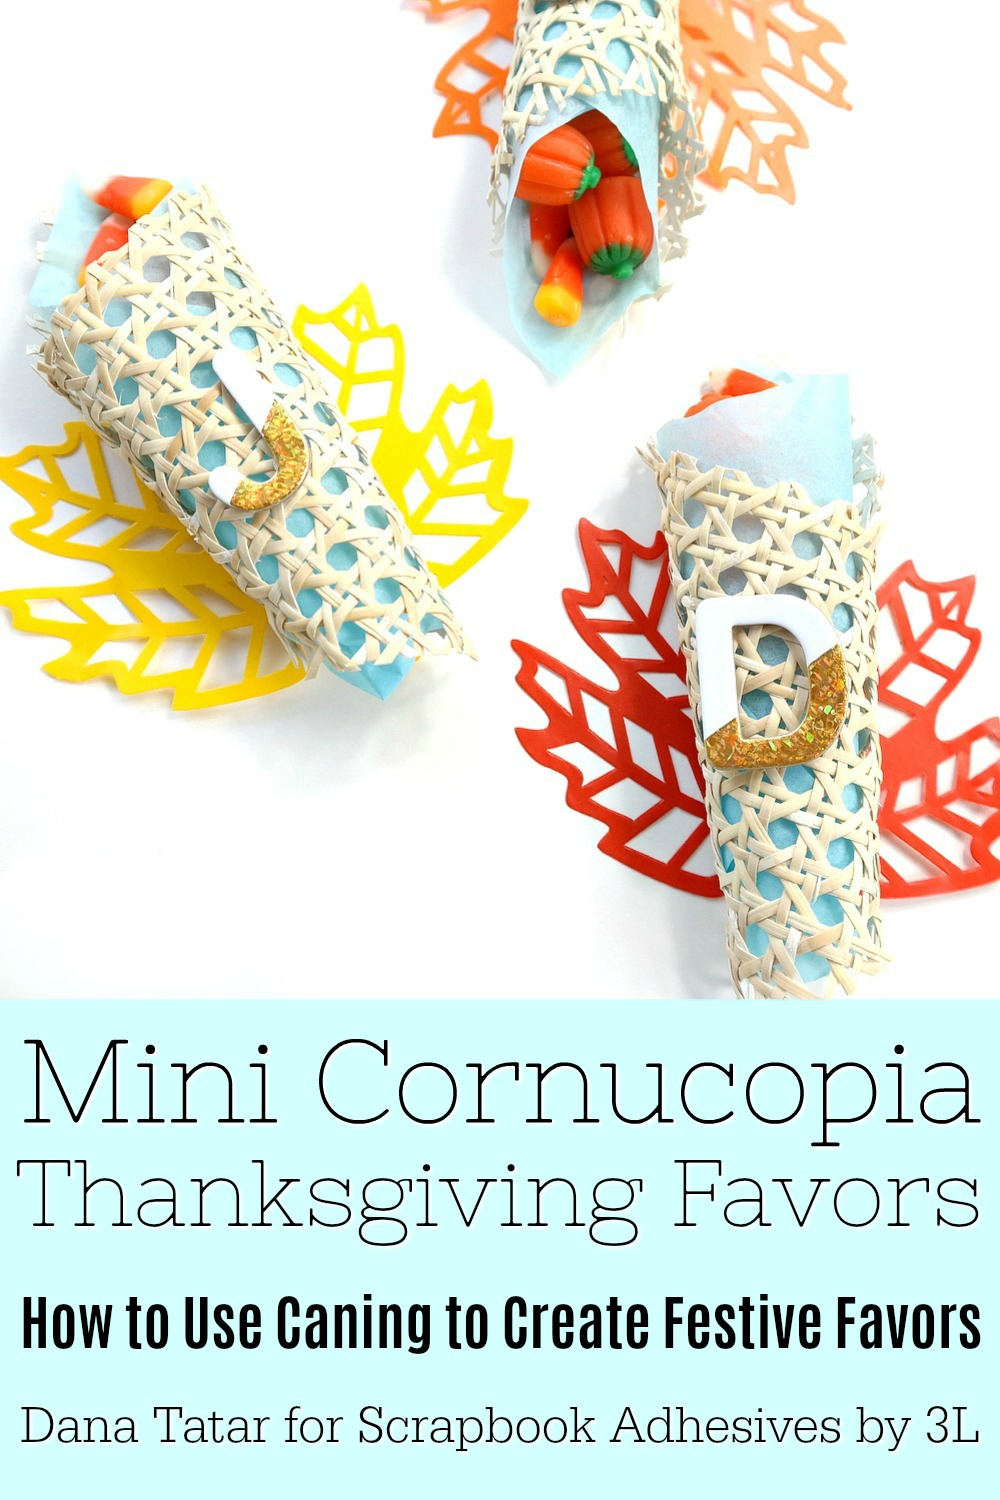 Mini Cornucopia Thanksgiving Favors with Foiled Letters and Colorful Leaves